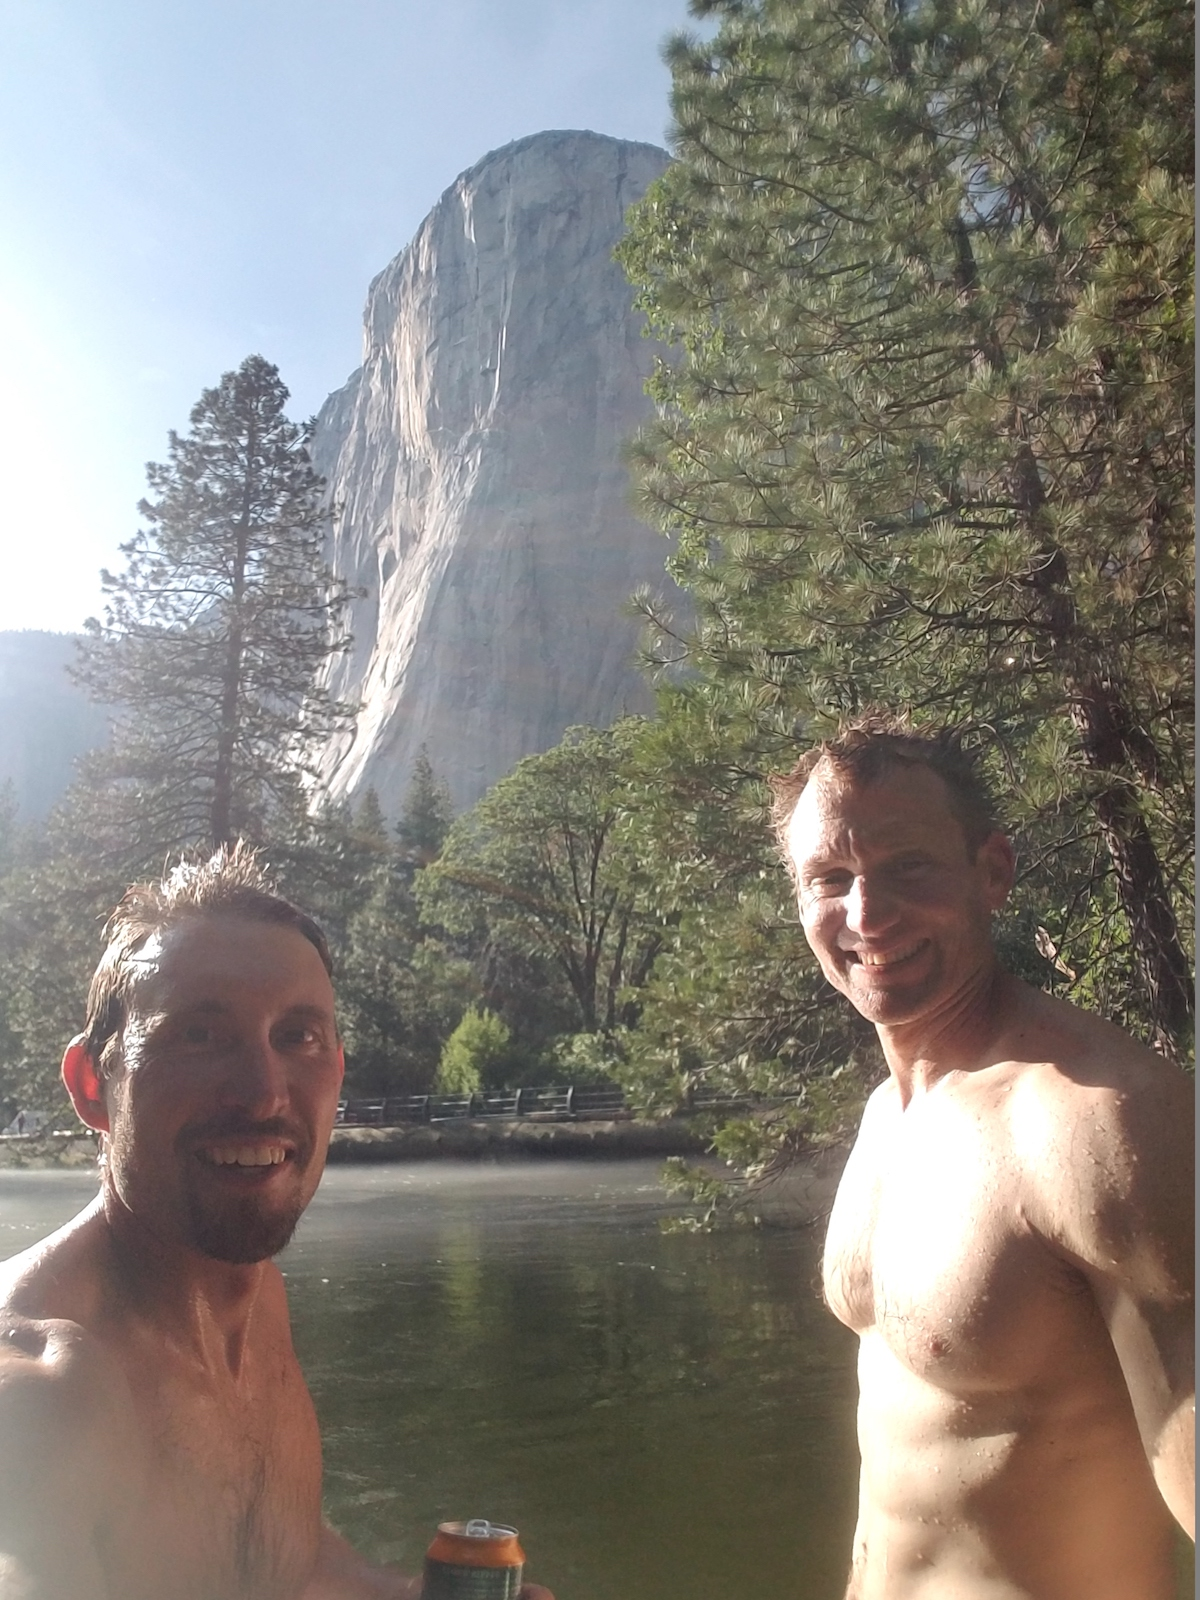 Stefan Griebel, left, and Klein after climbing El Cap, 2017. [Photo] Courtesy of Stefan Griebel